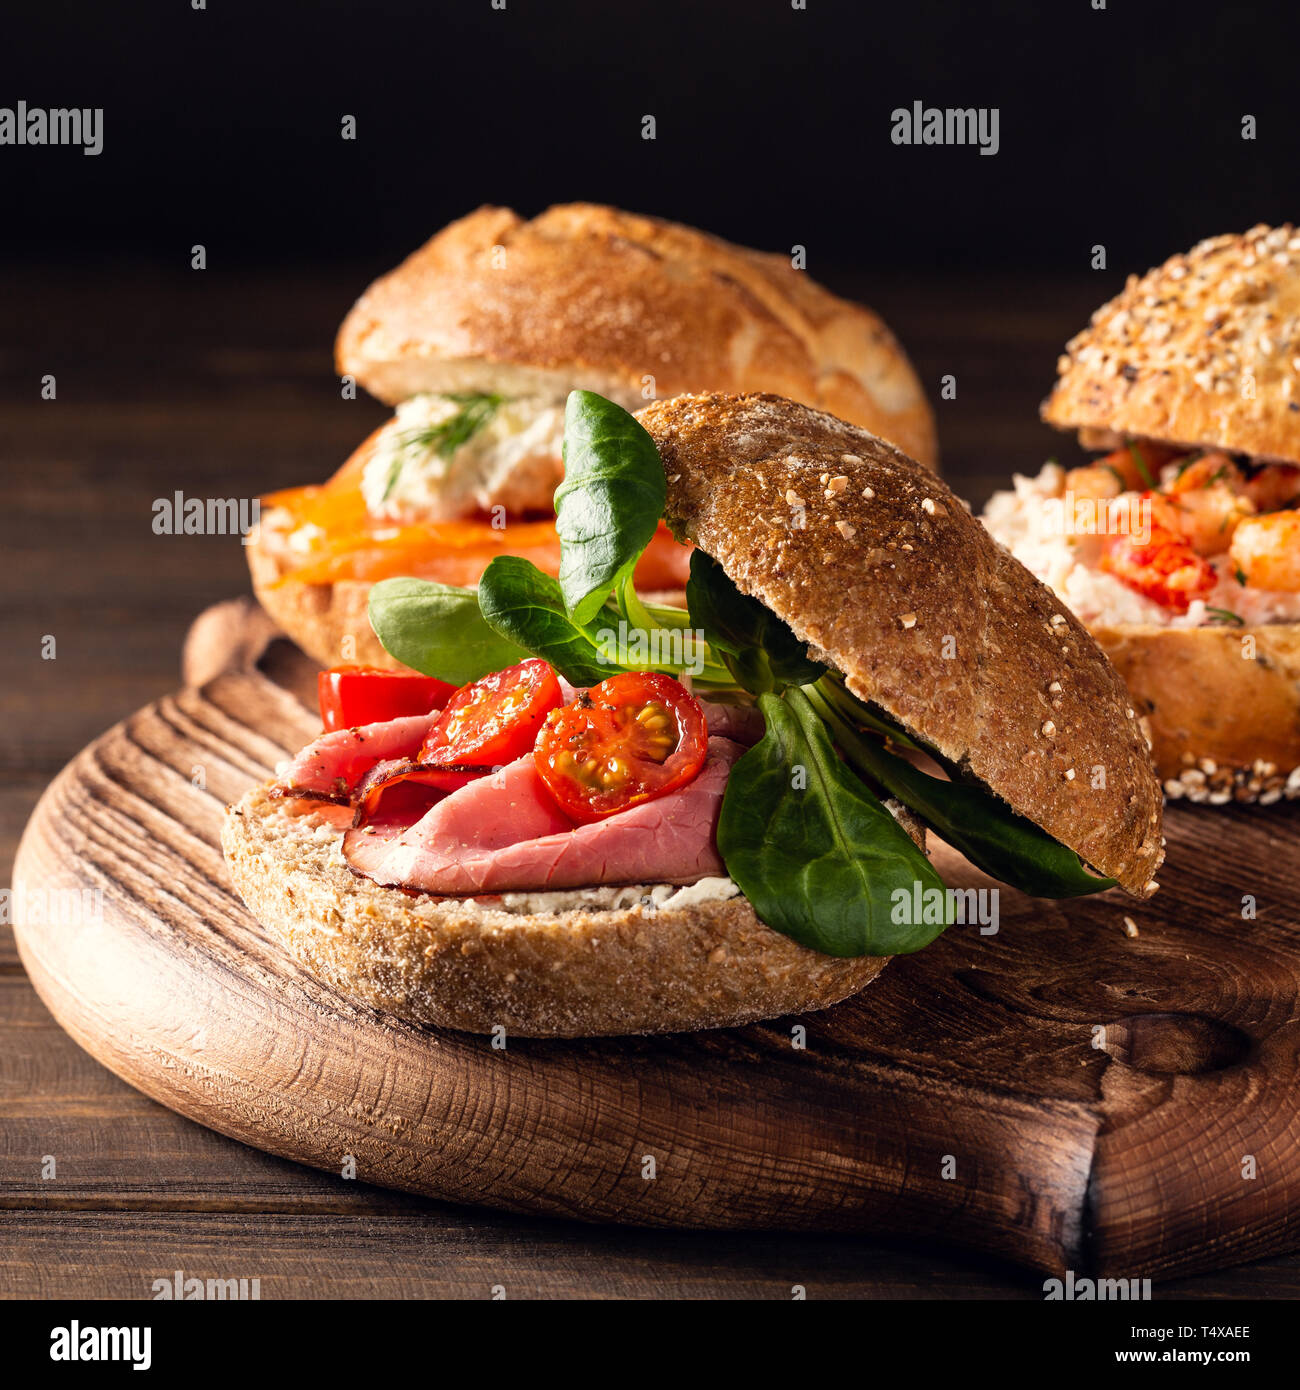 Sandwiche with beef, fresh tomatoes and lamb's lettuce, multigrain bun. Healthy lunch concept with copy space - Stock Image